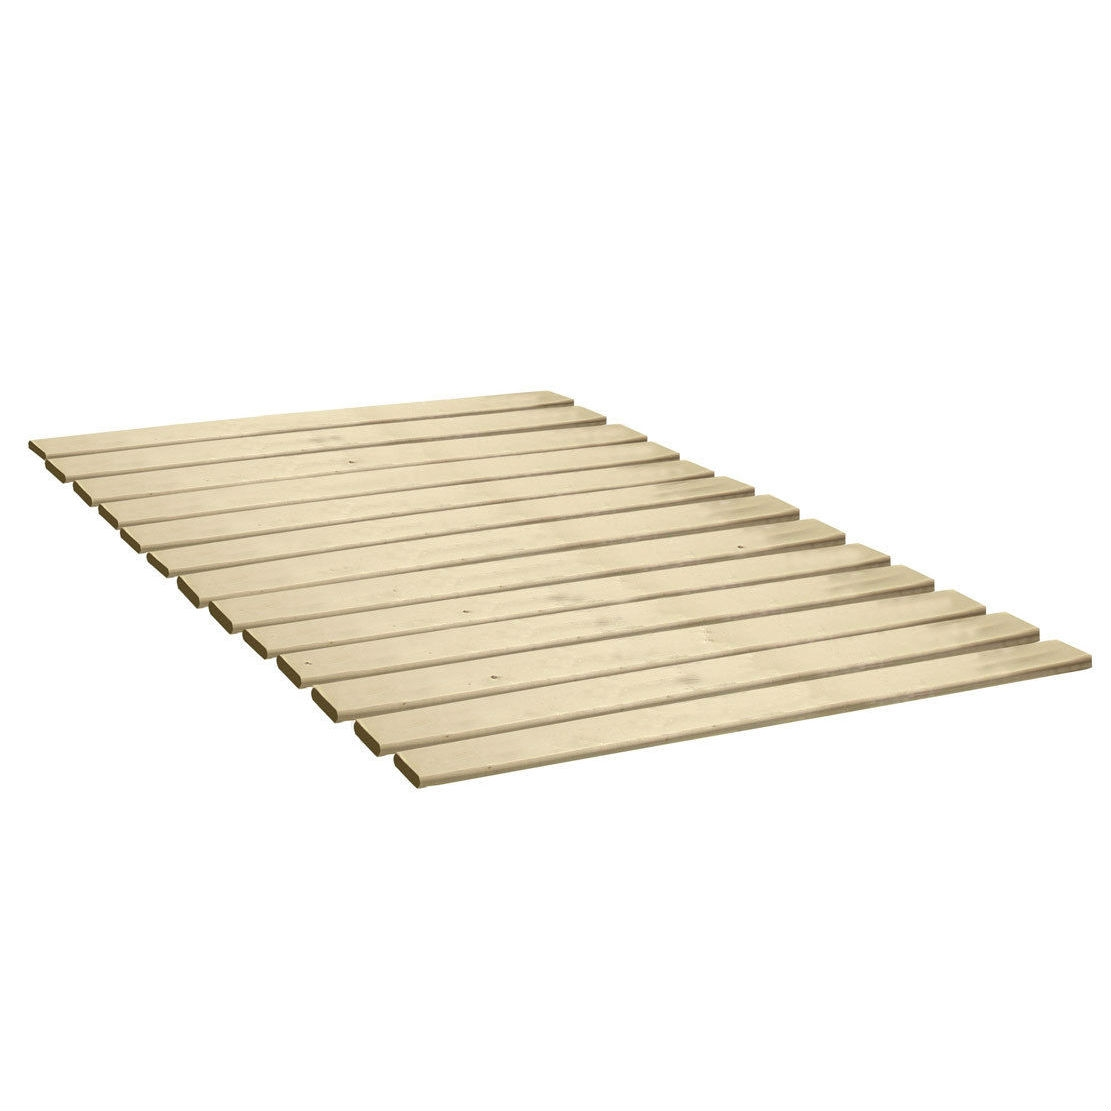 King Size Bed Measurements King Size Solid Wood Bed Slats Made In Usa